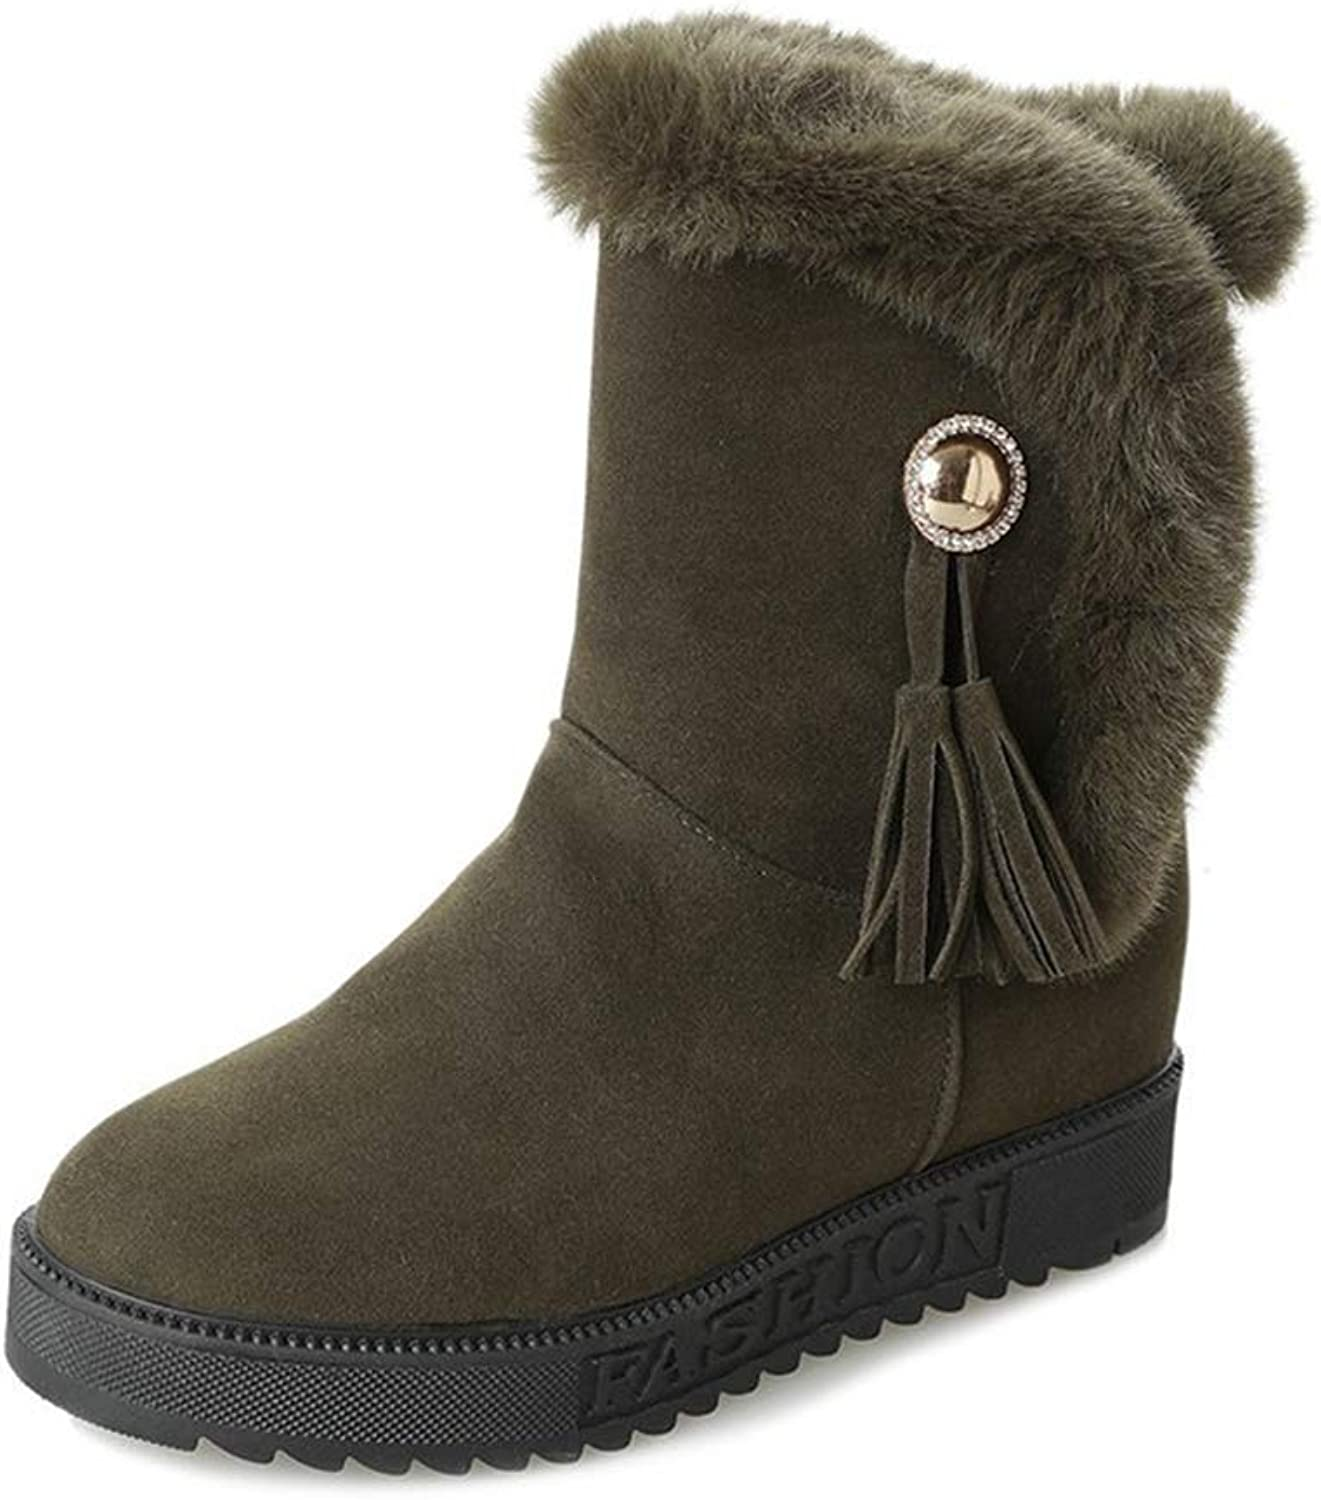 Coloing Women's Autumn Winter Fashion Warm Non-Slip Boots High top shoes Boot